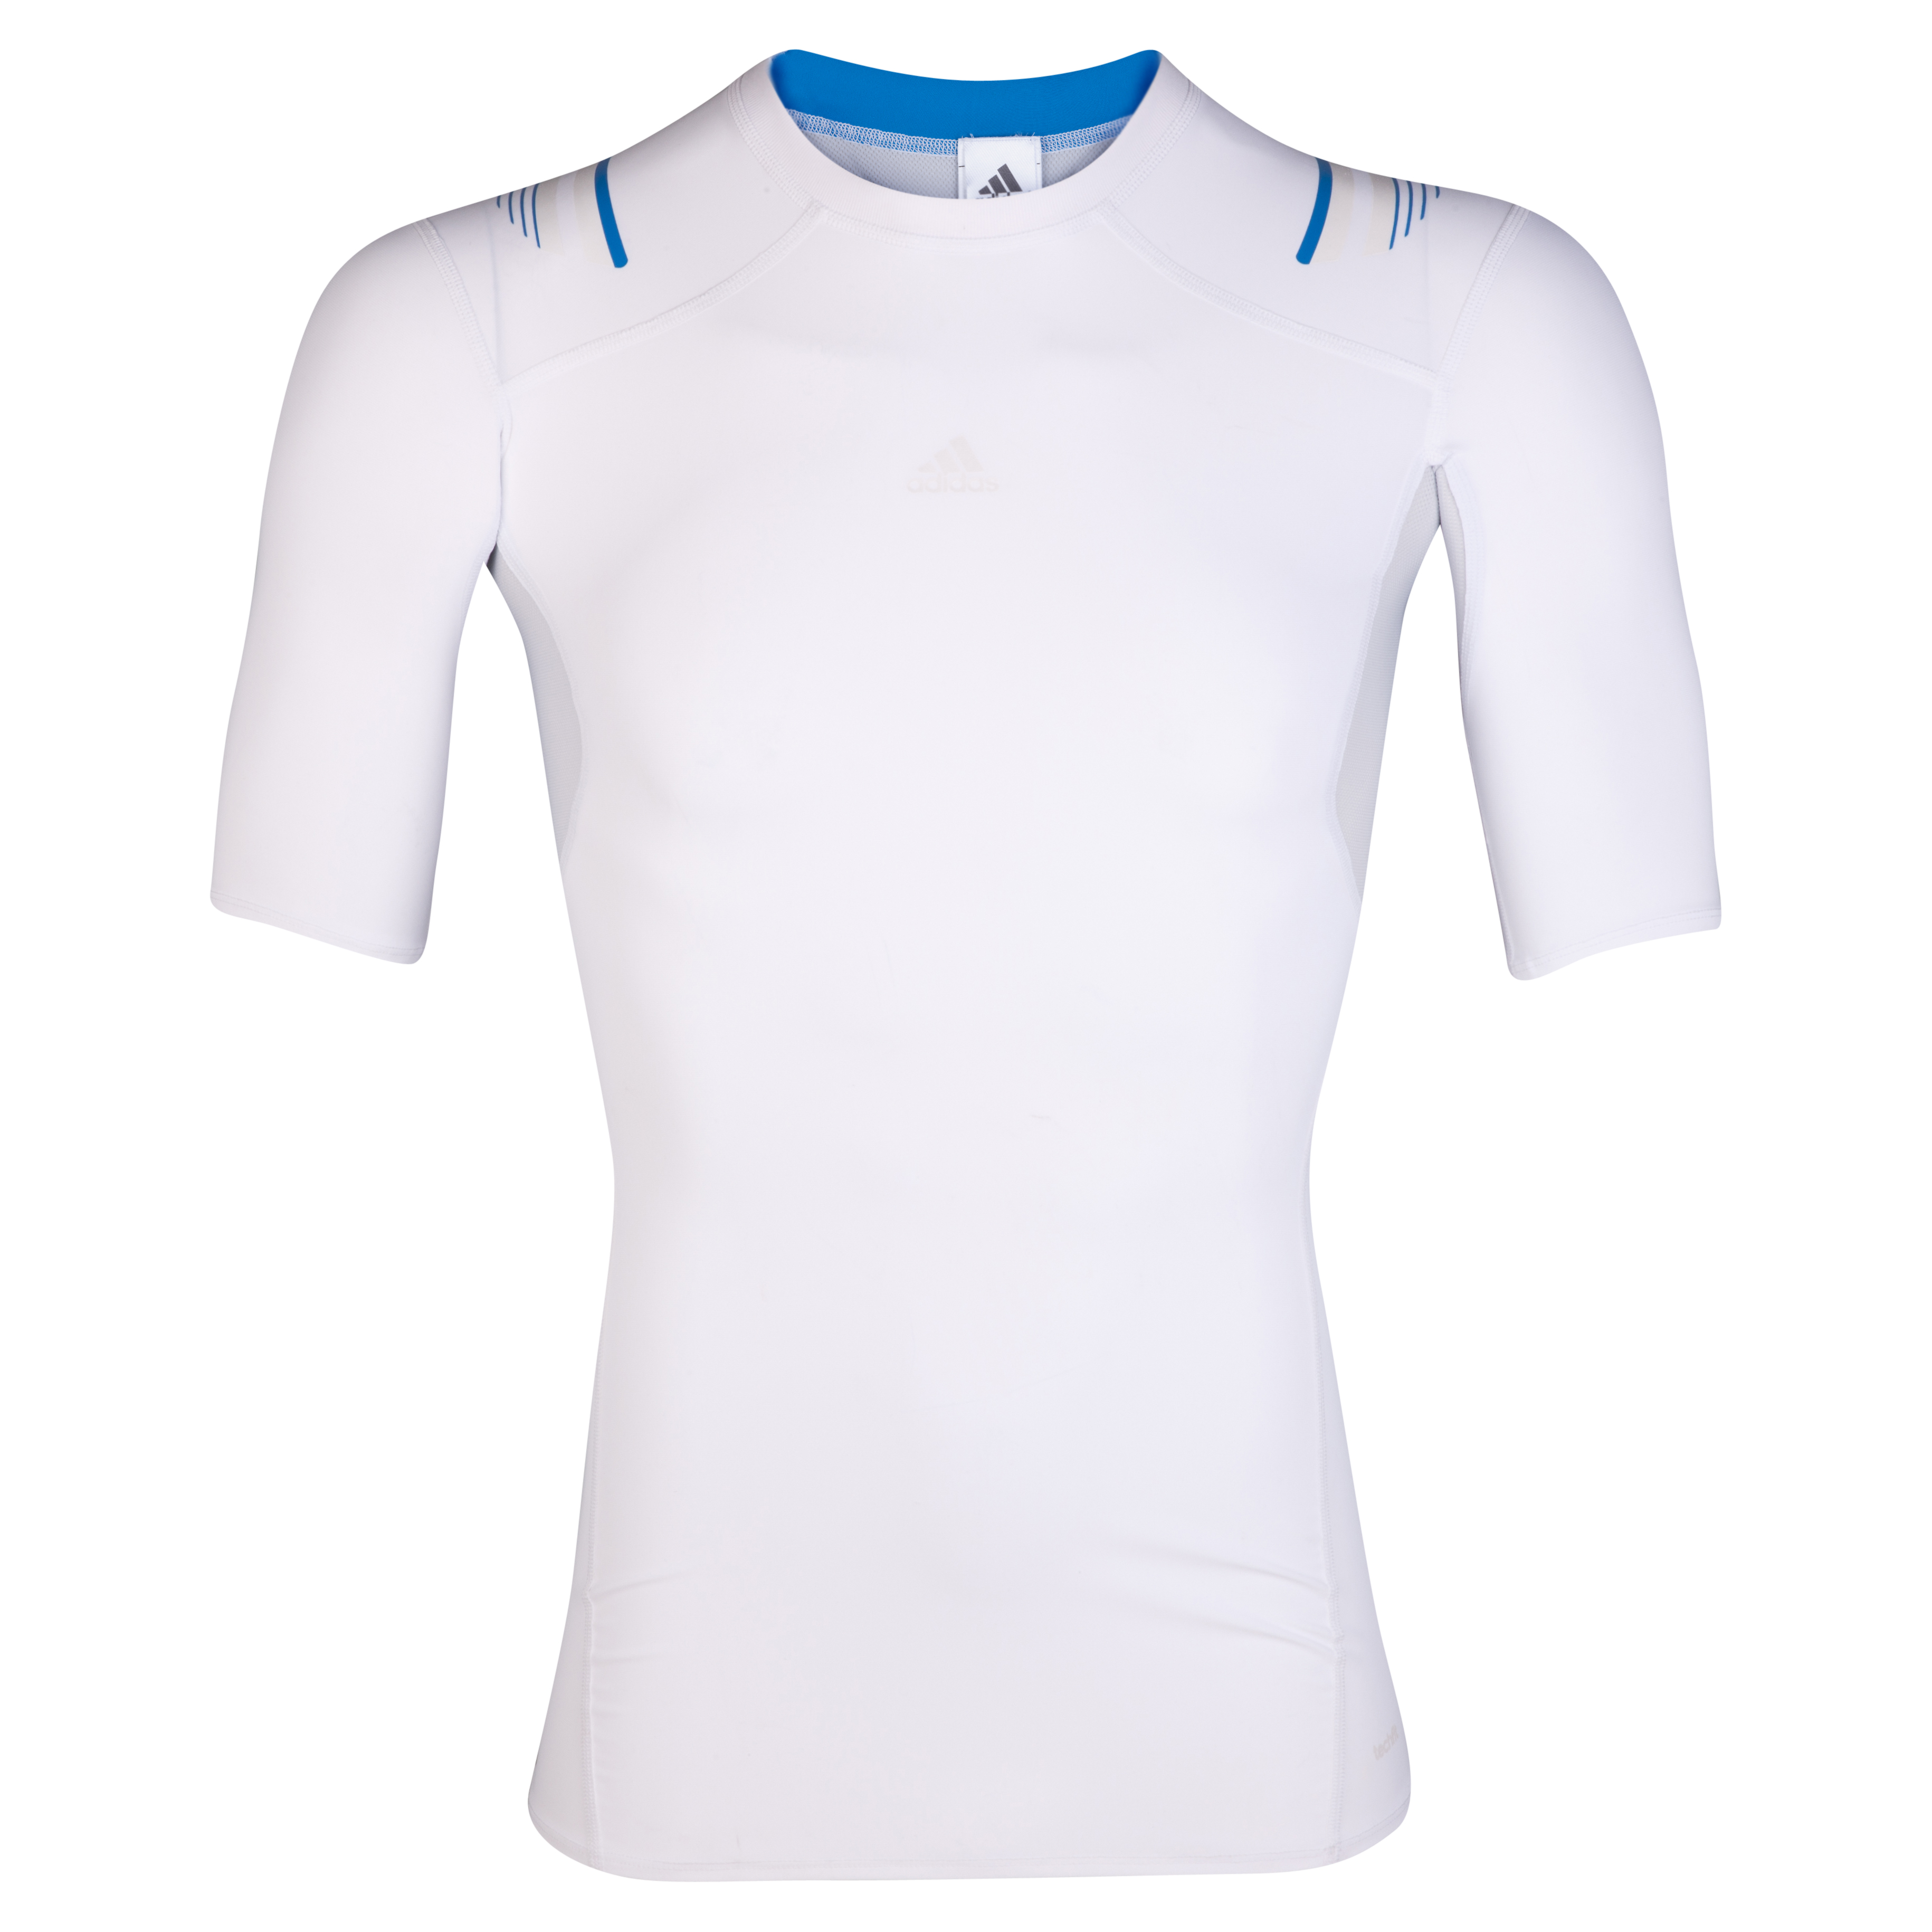 Adidas TechFit PowerWeb Top - Short Sleeve - White